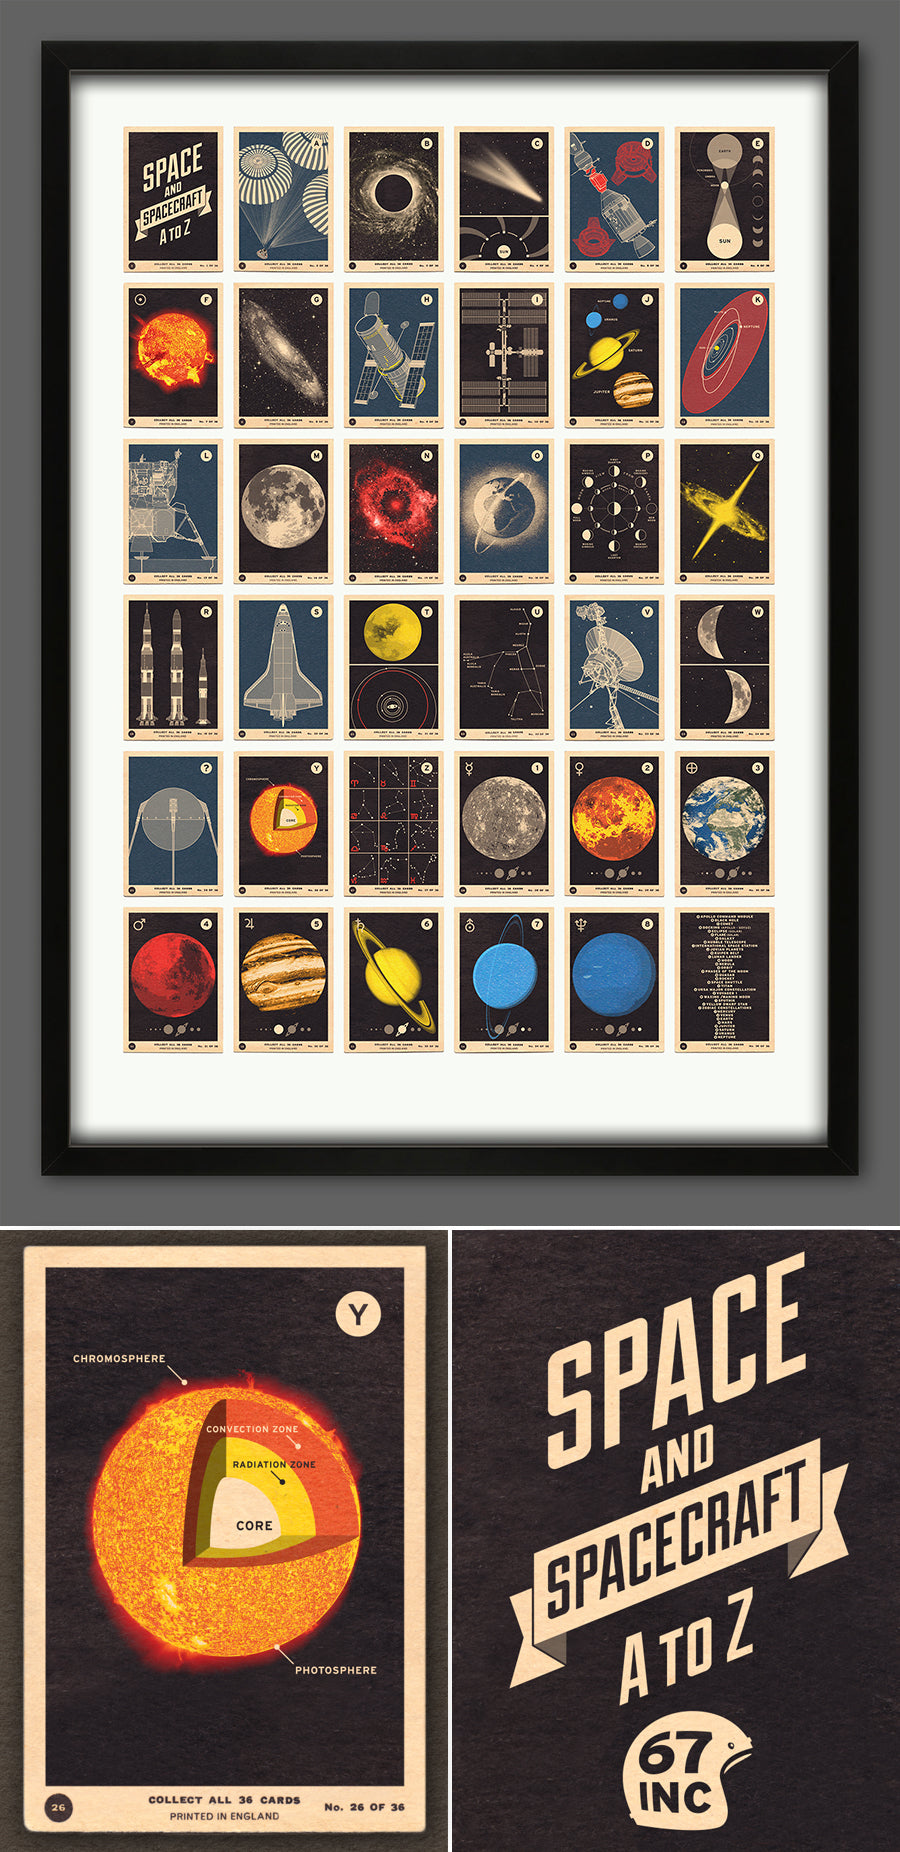 New print launched today - 'Space and Spacecraft A to Z' - 67 Inc